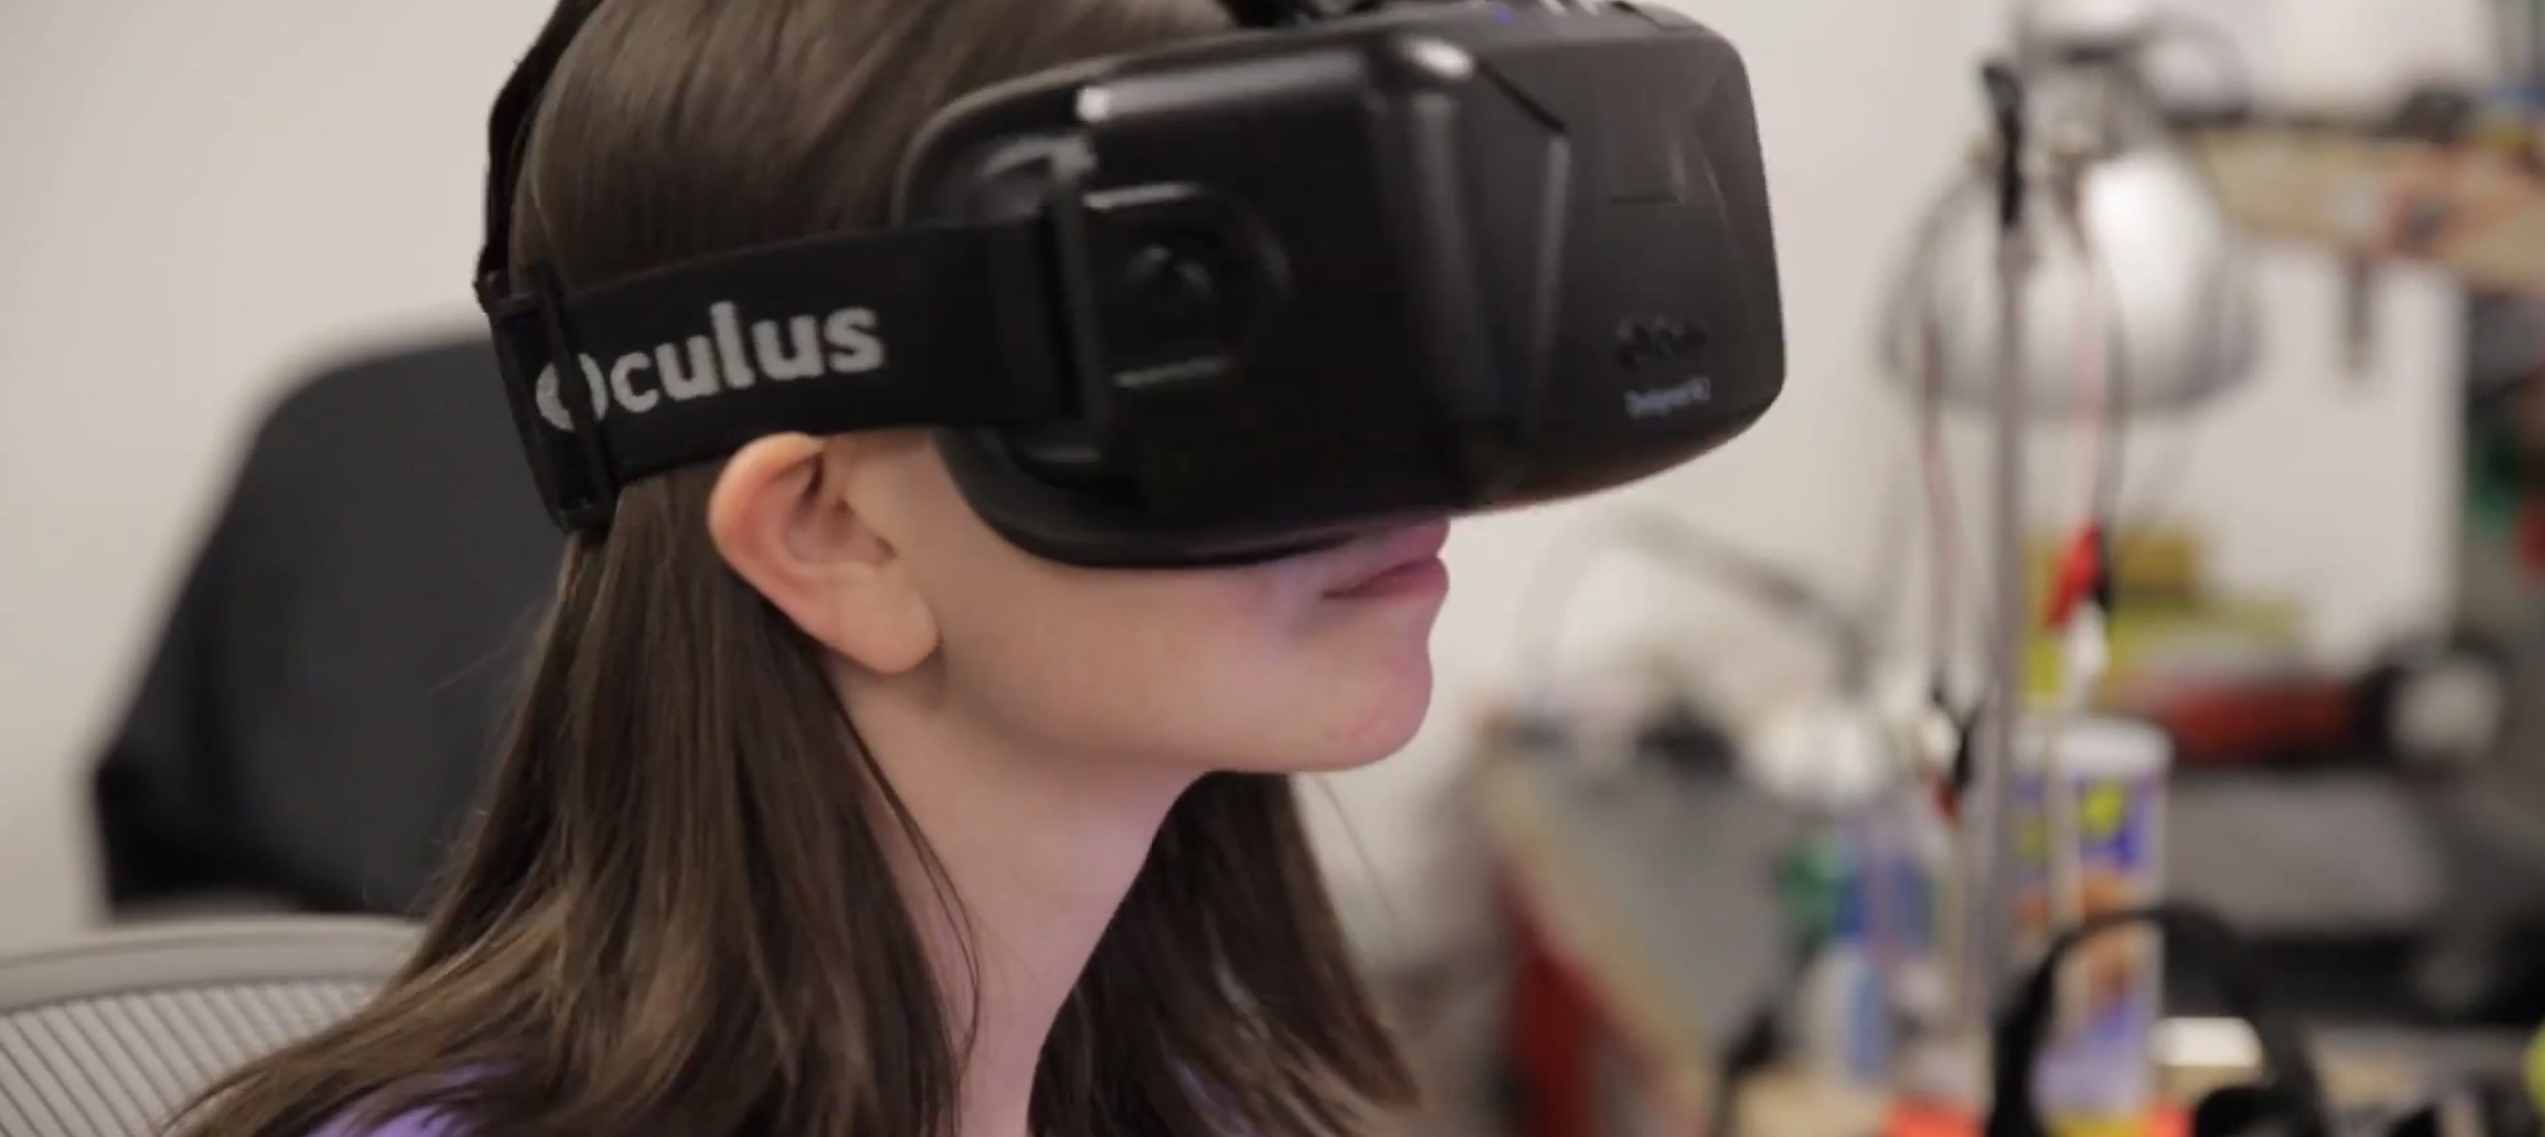 Facebook Talks to Film Studios About Content for Oculus Rift